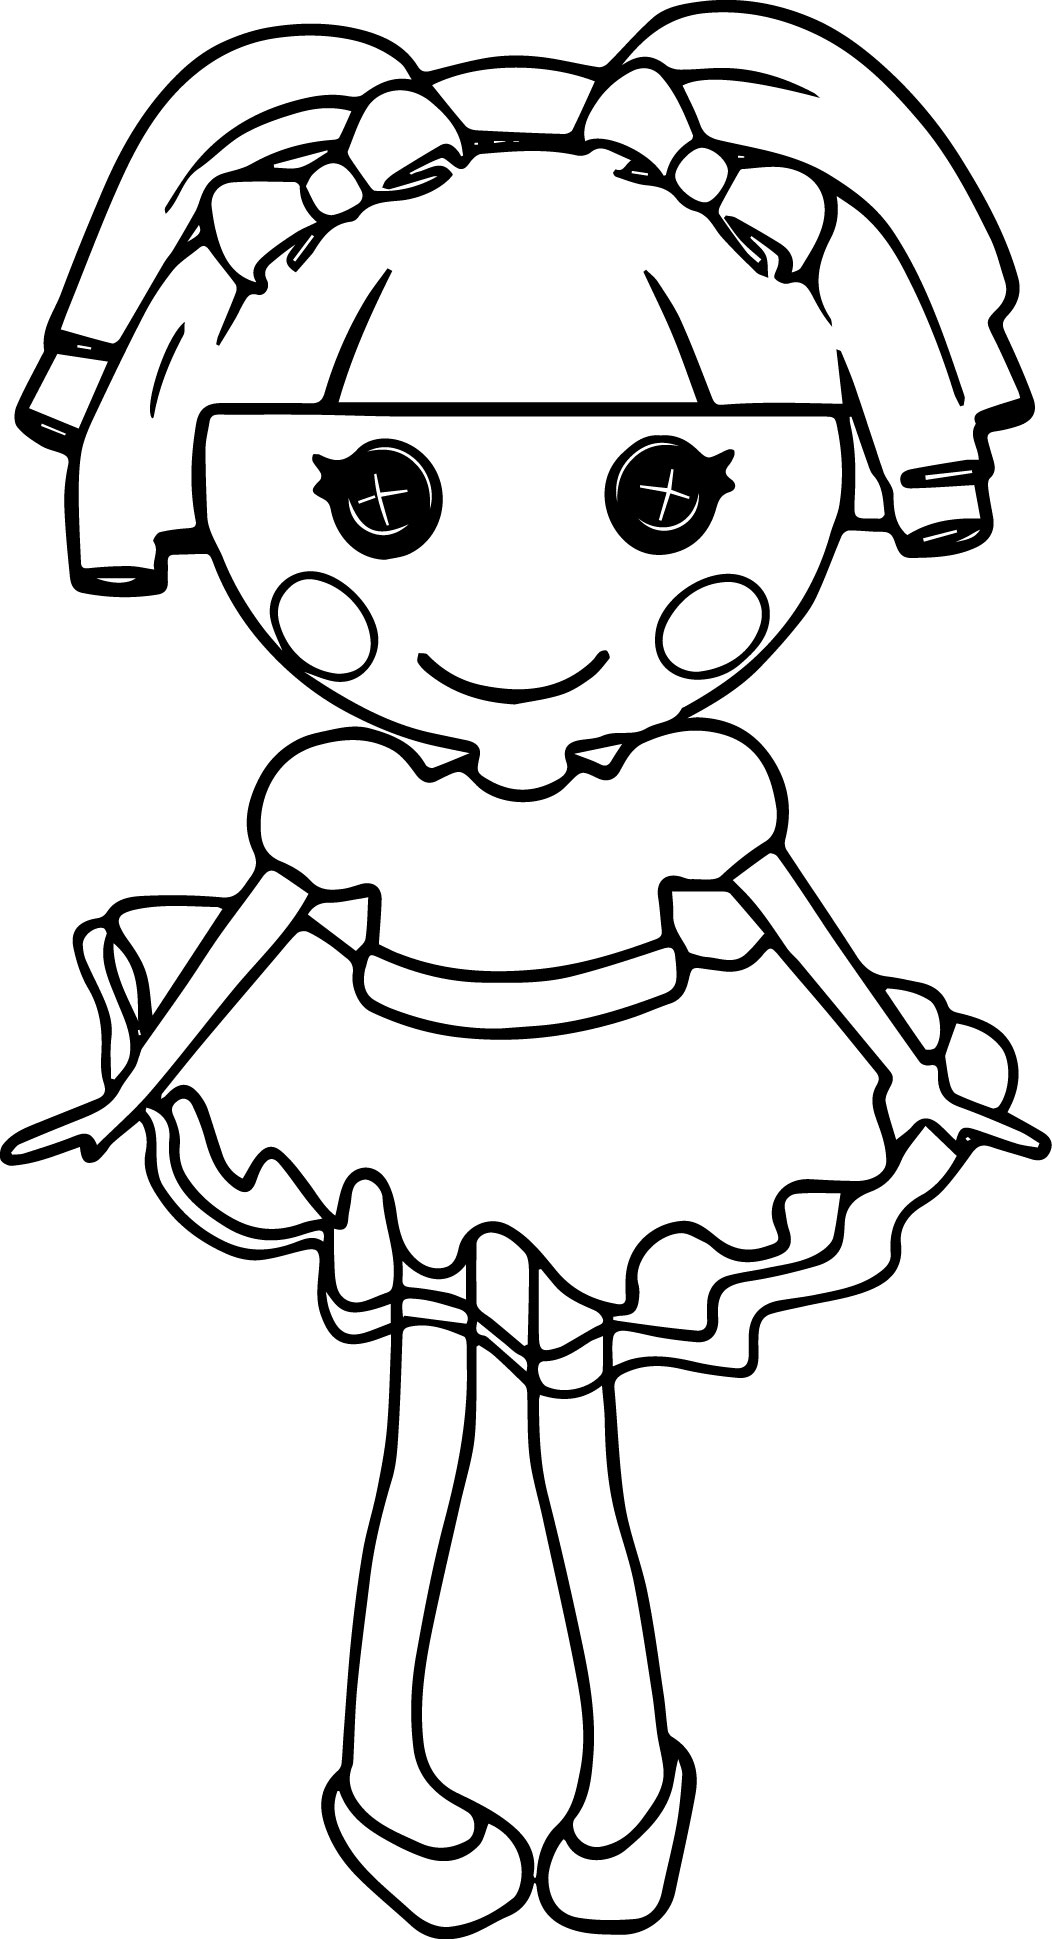 lalaloopsy_commission_coloring_page